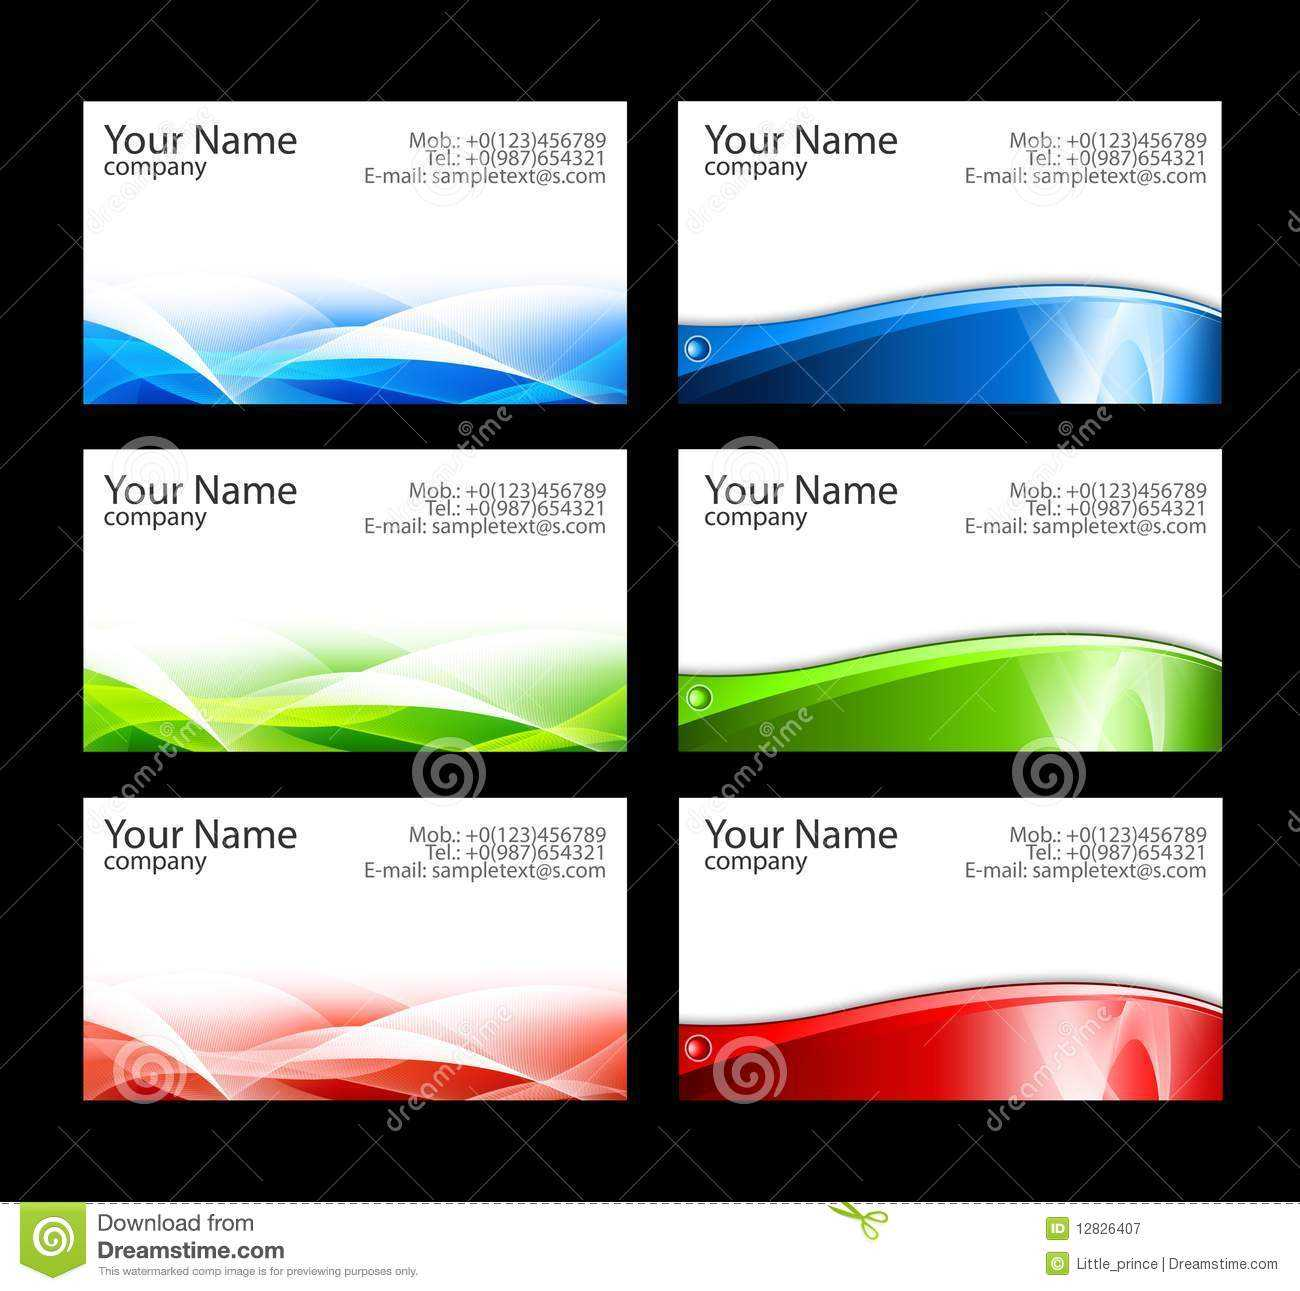 Business Cards Templates Stock Illustration. Illustration Of Intended For Call Card Templates